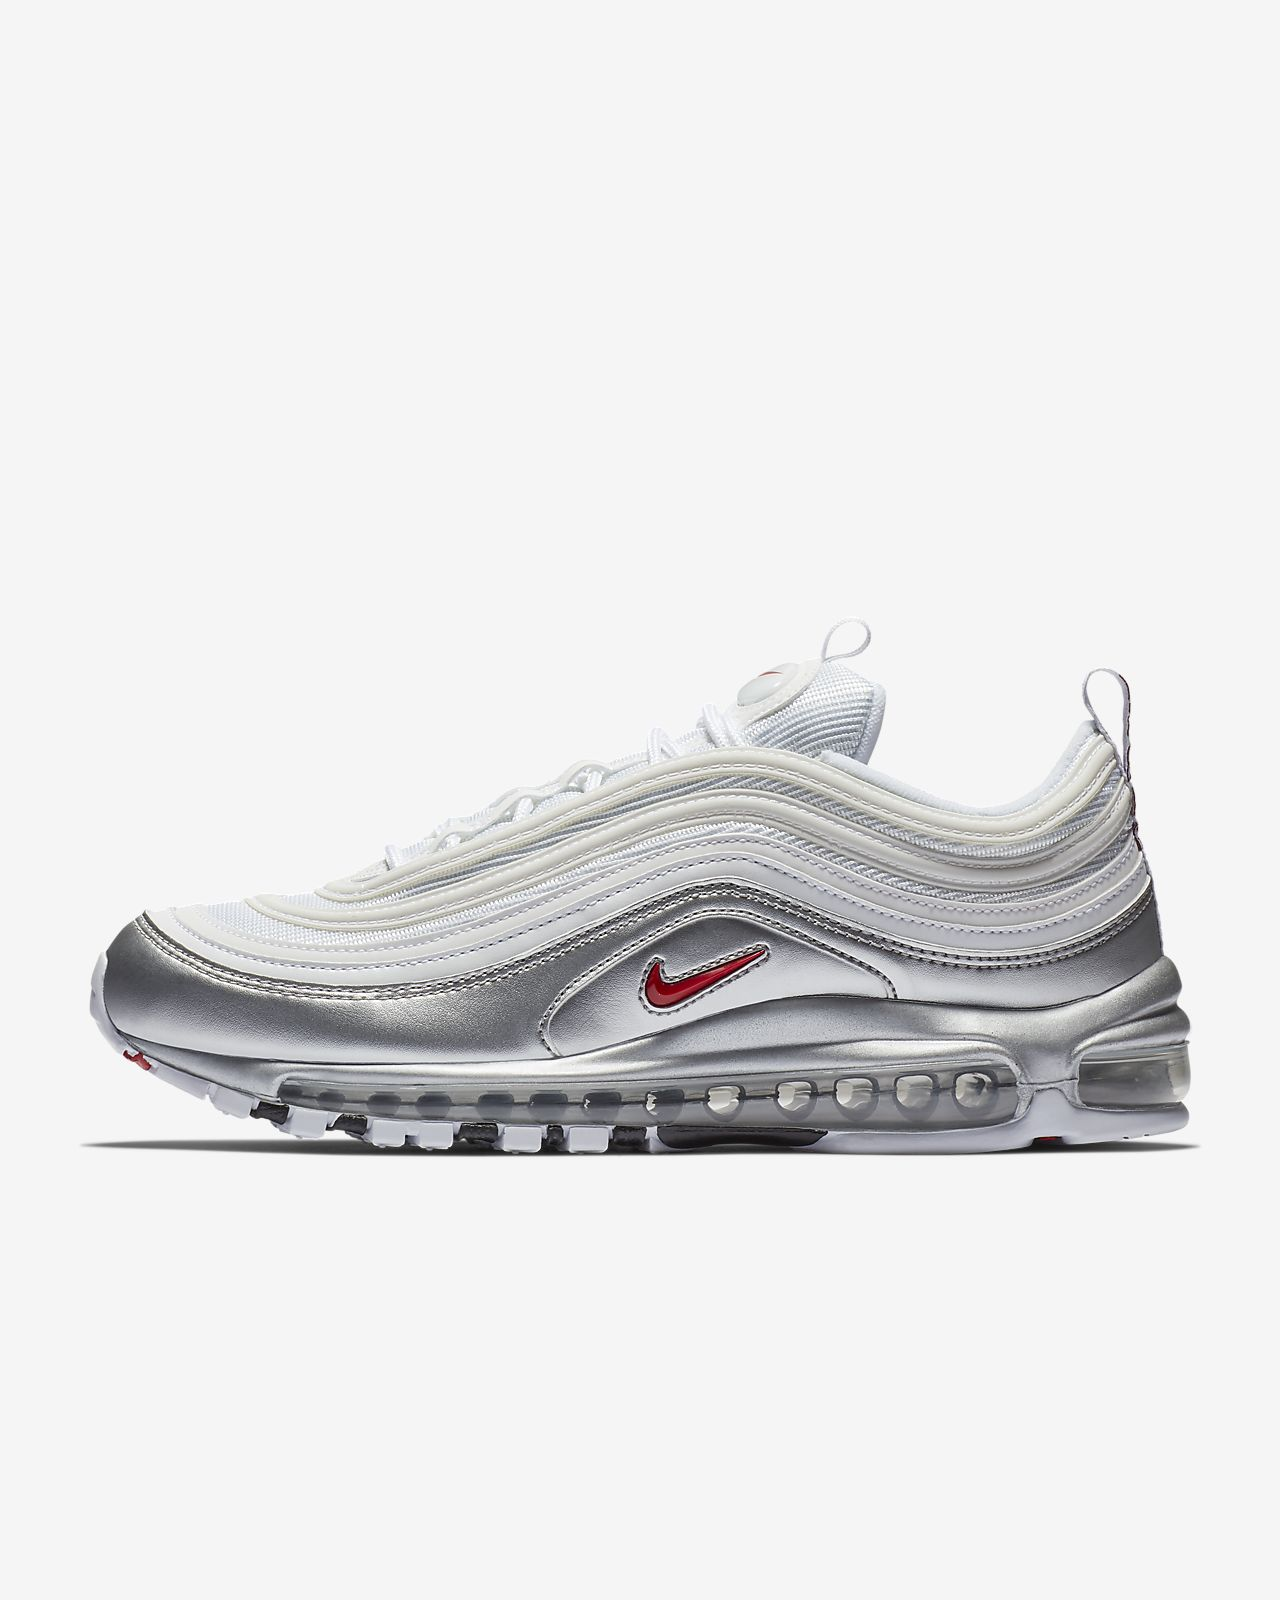 a099a375918 Nike Air Max 97 QS Men s Shoe. Nike.com